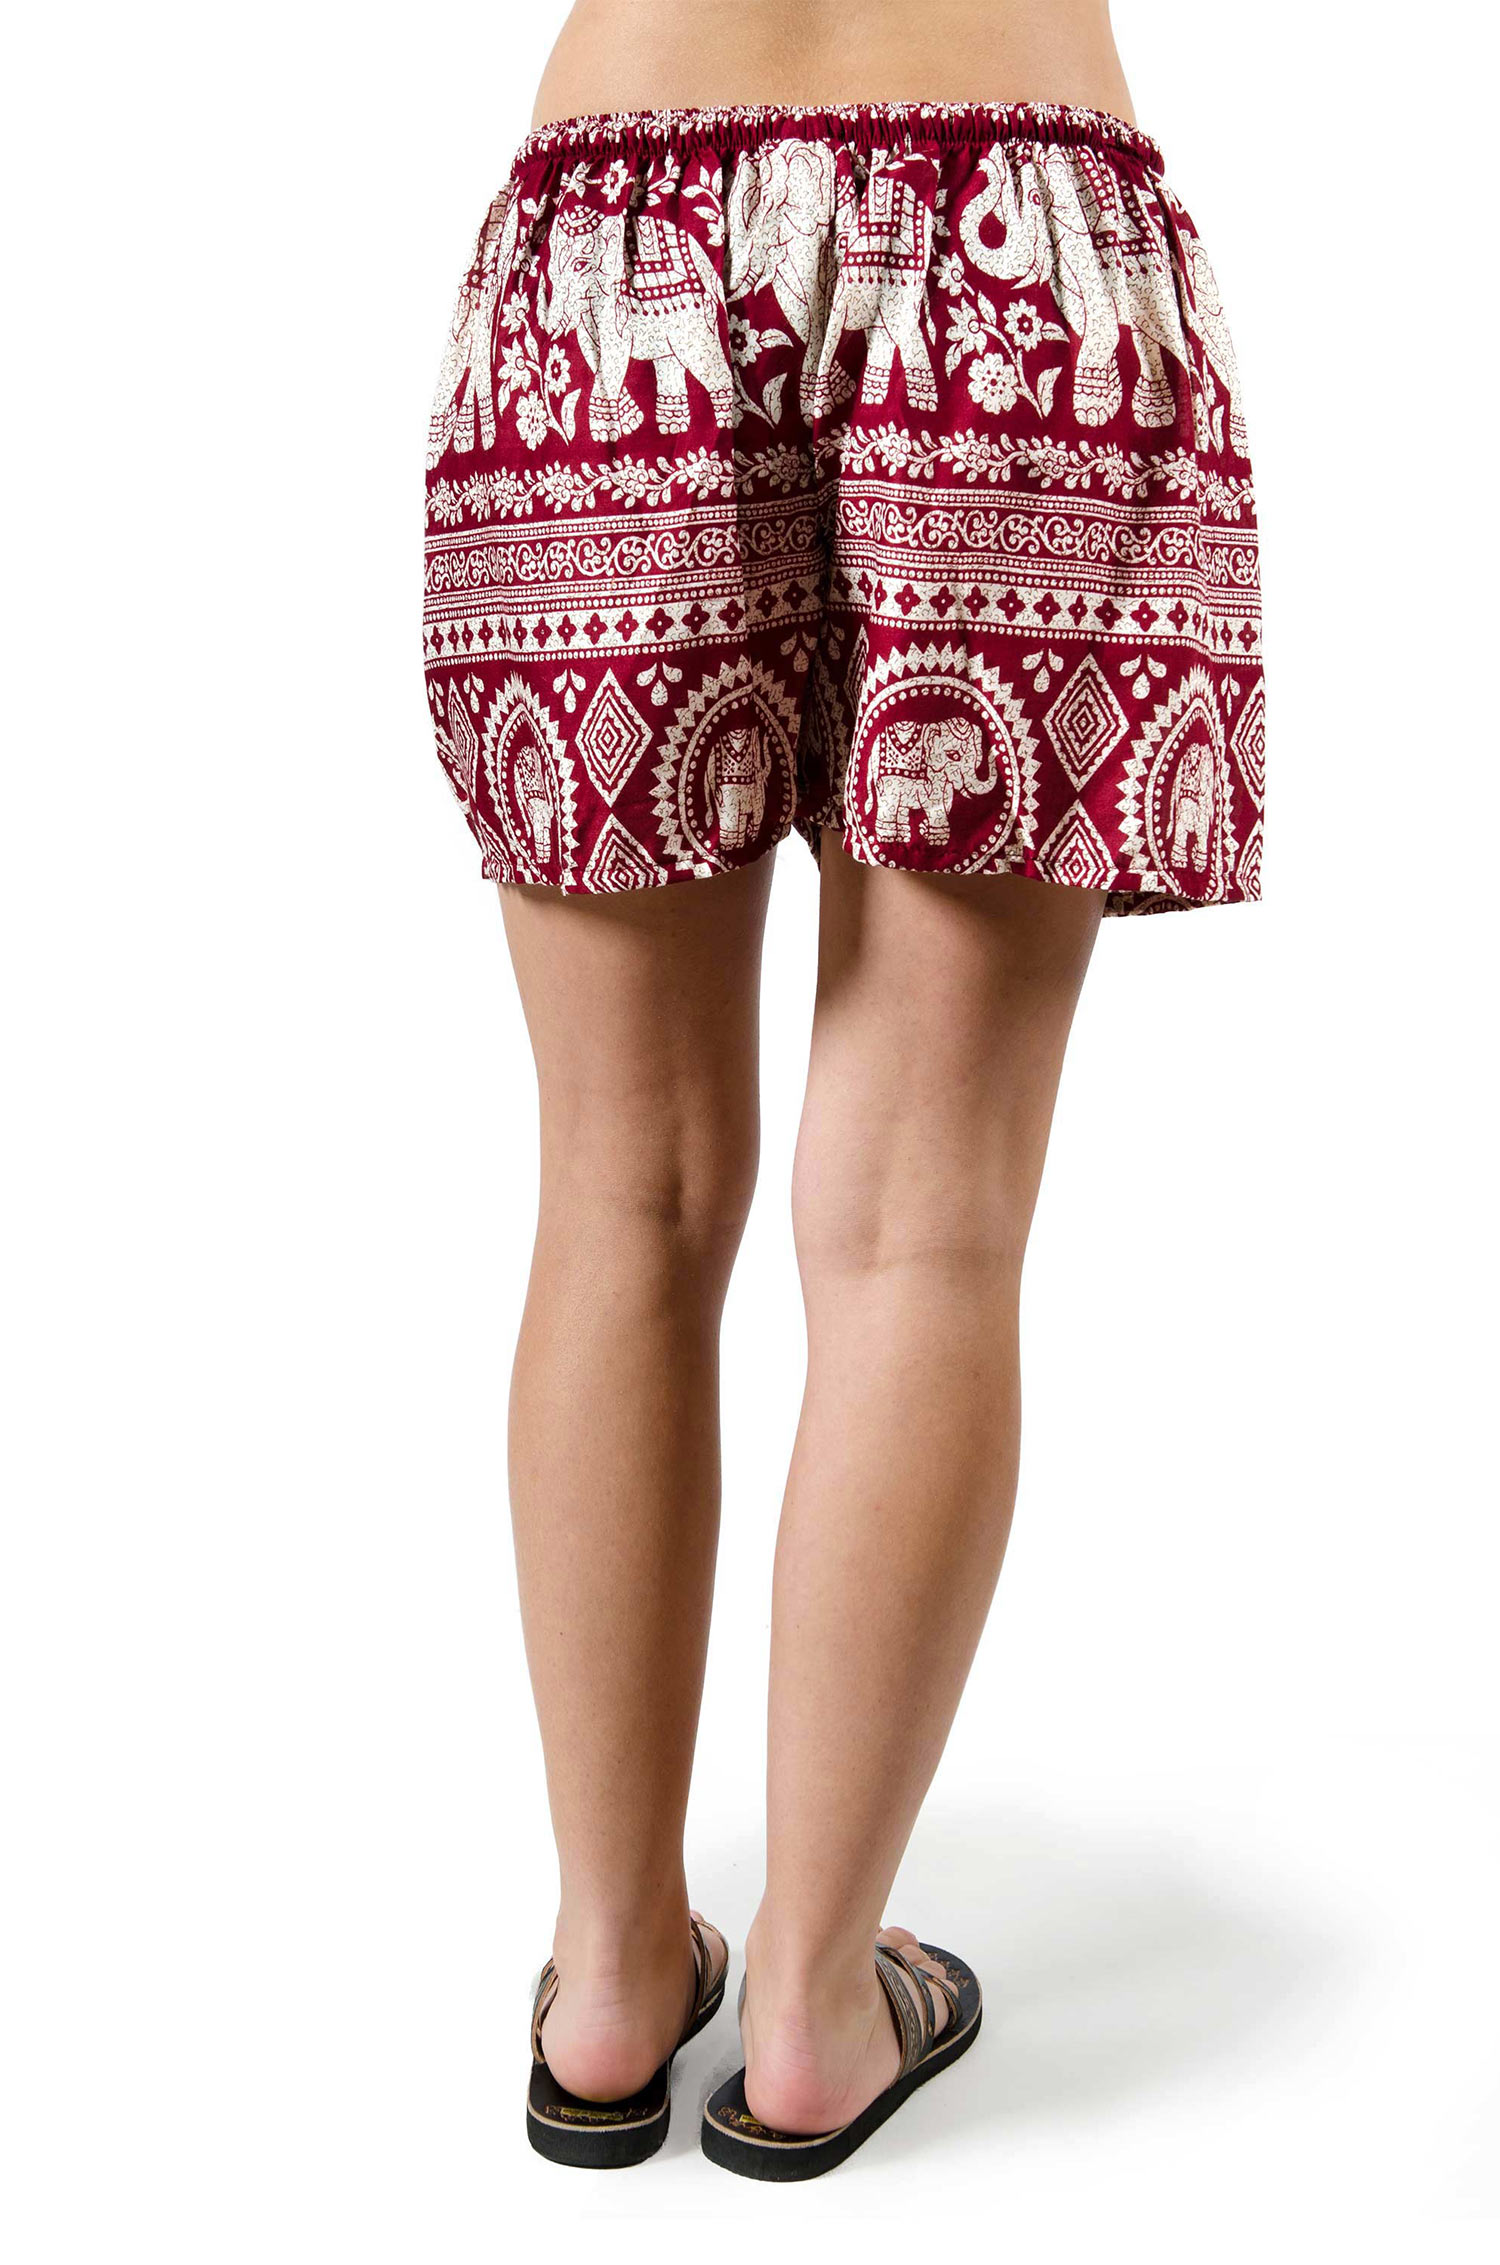 Elephant Print Shorts - Red - 3542R